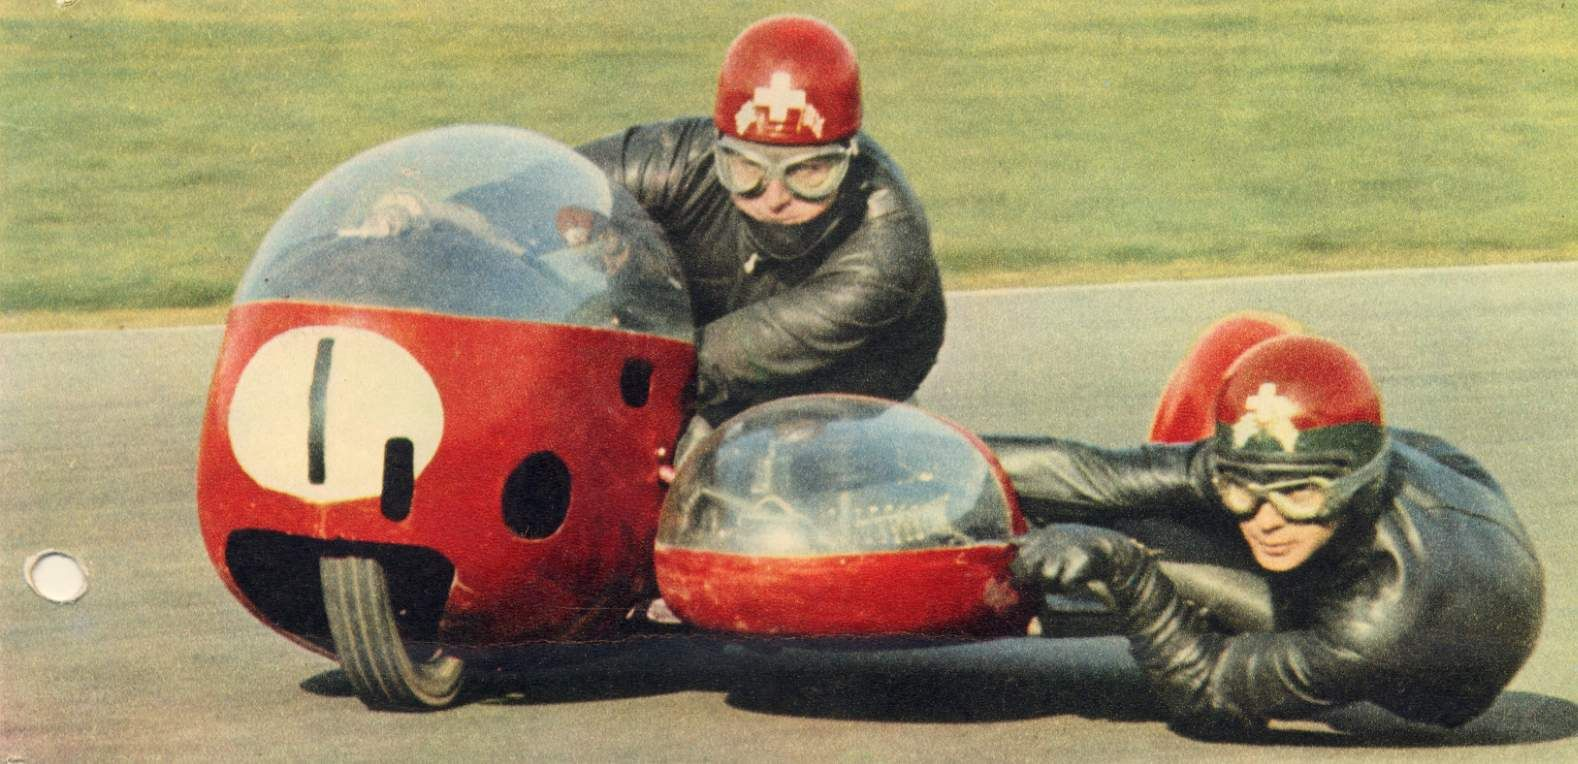 Fritz Scheidegger. - sidecar - 26 Mar 1967 Whilst in the lead at Mallory Park Fritz was killed instantly after crashing at the Hairpin.